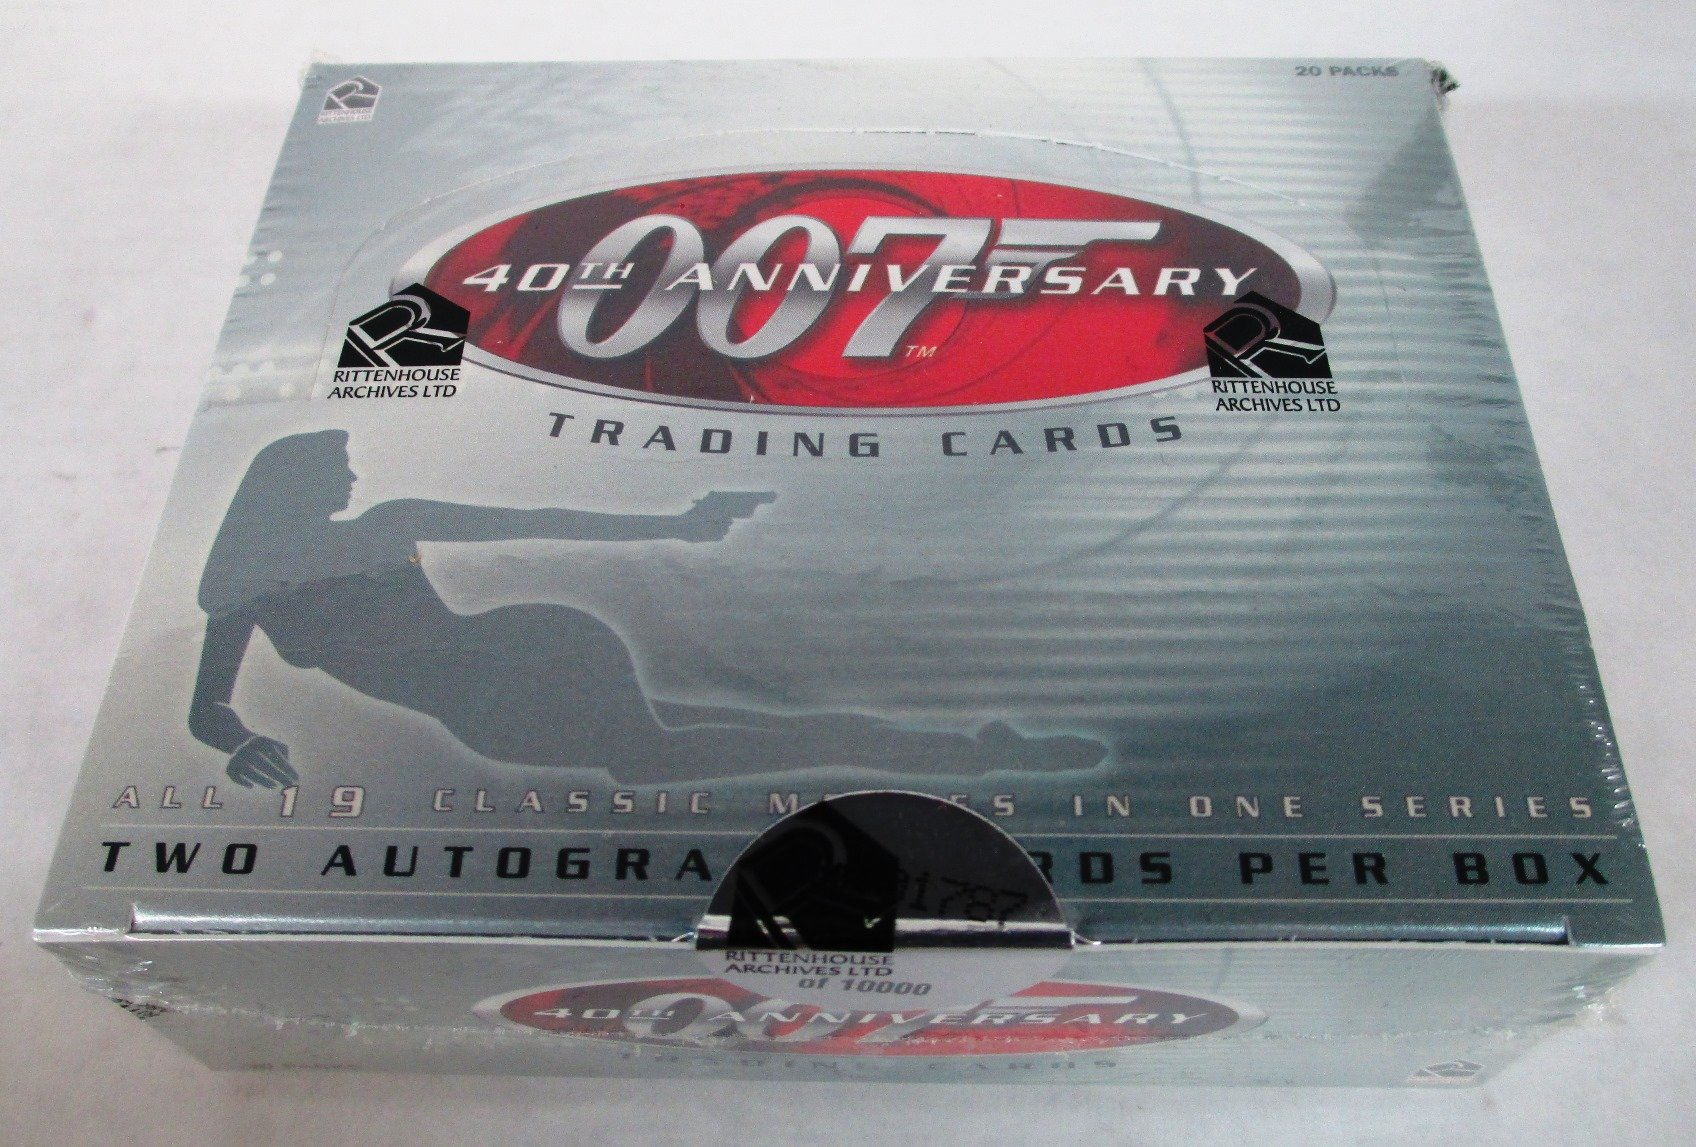 Rittenhouse James Bond 40th Anniversary Trading Cards Box Set - 2 Autograph Cards Per Box!